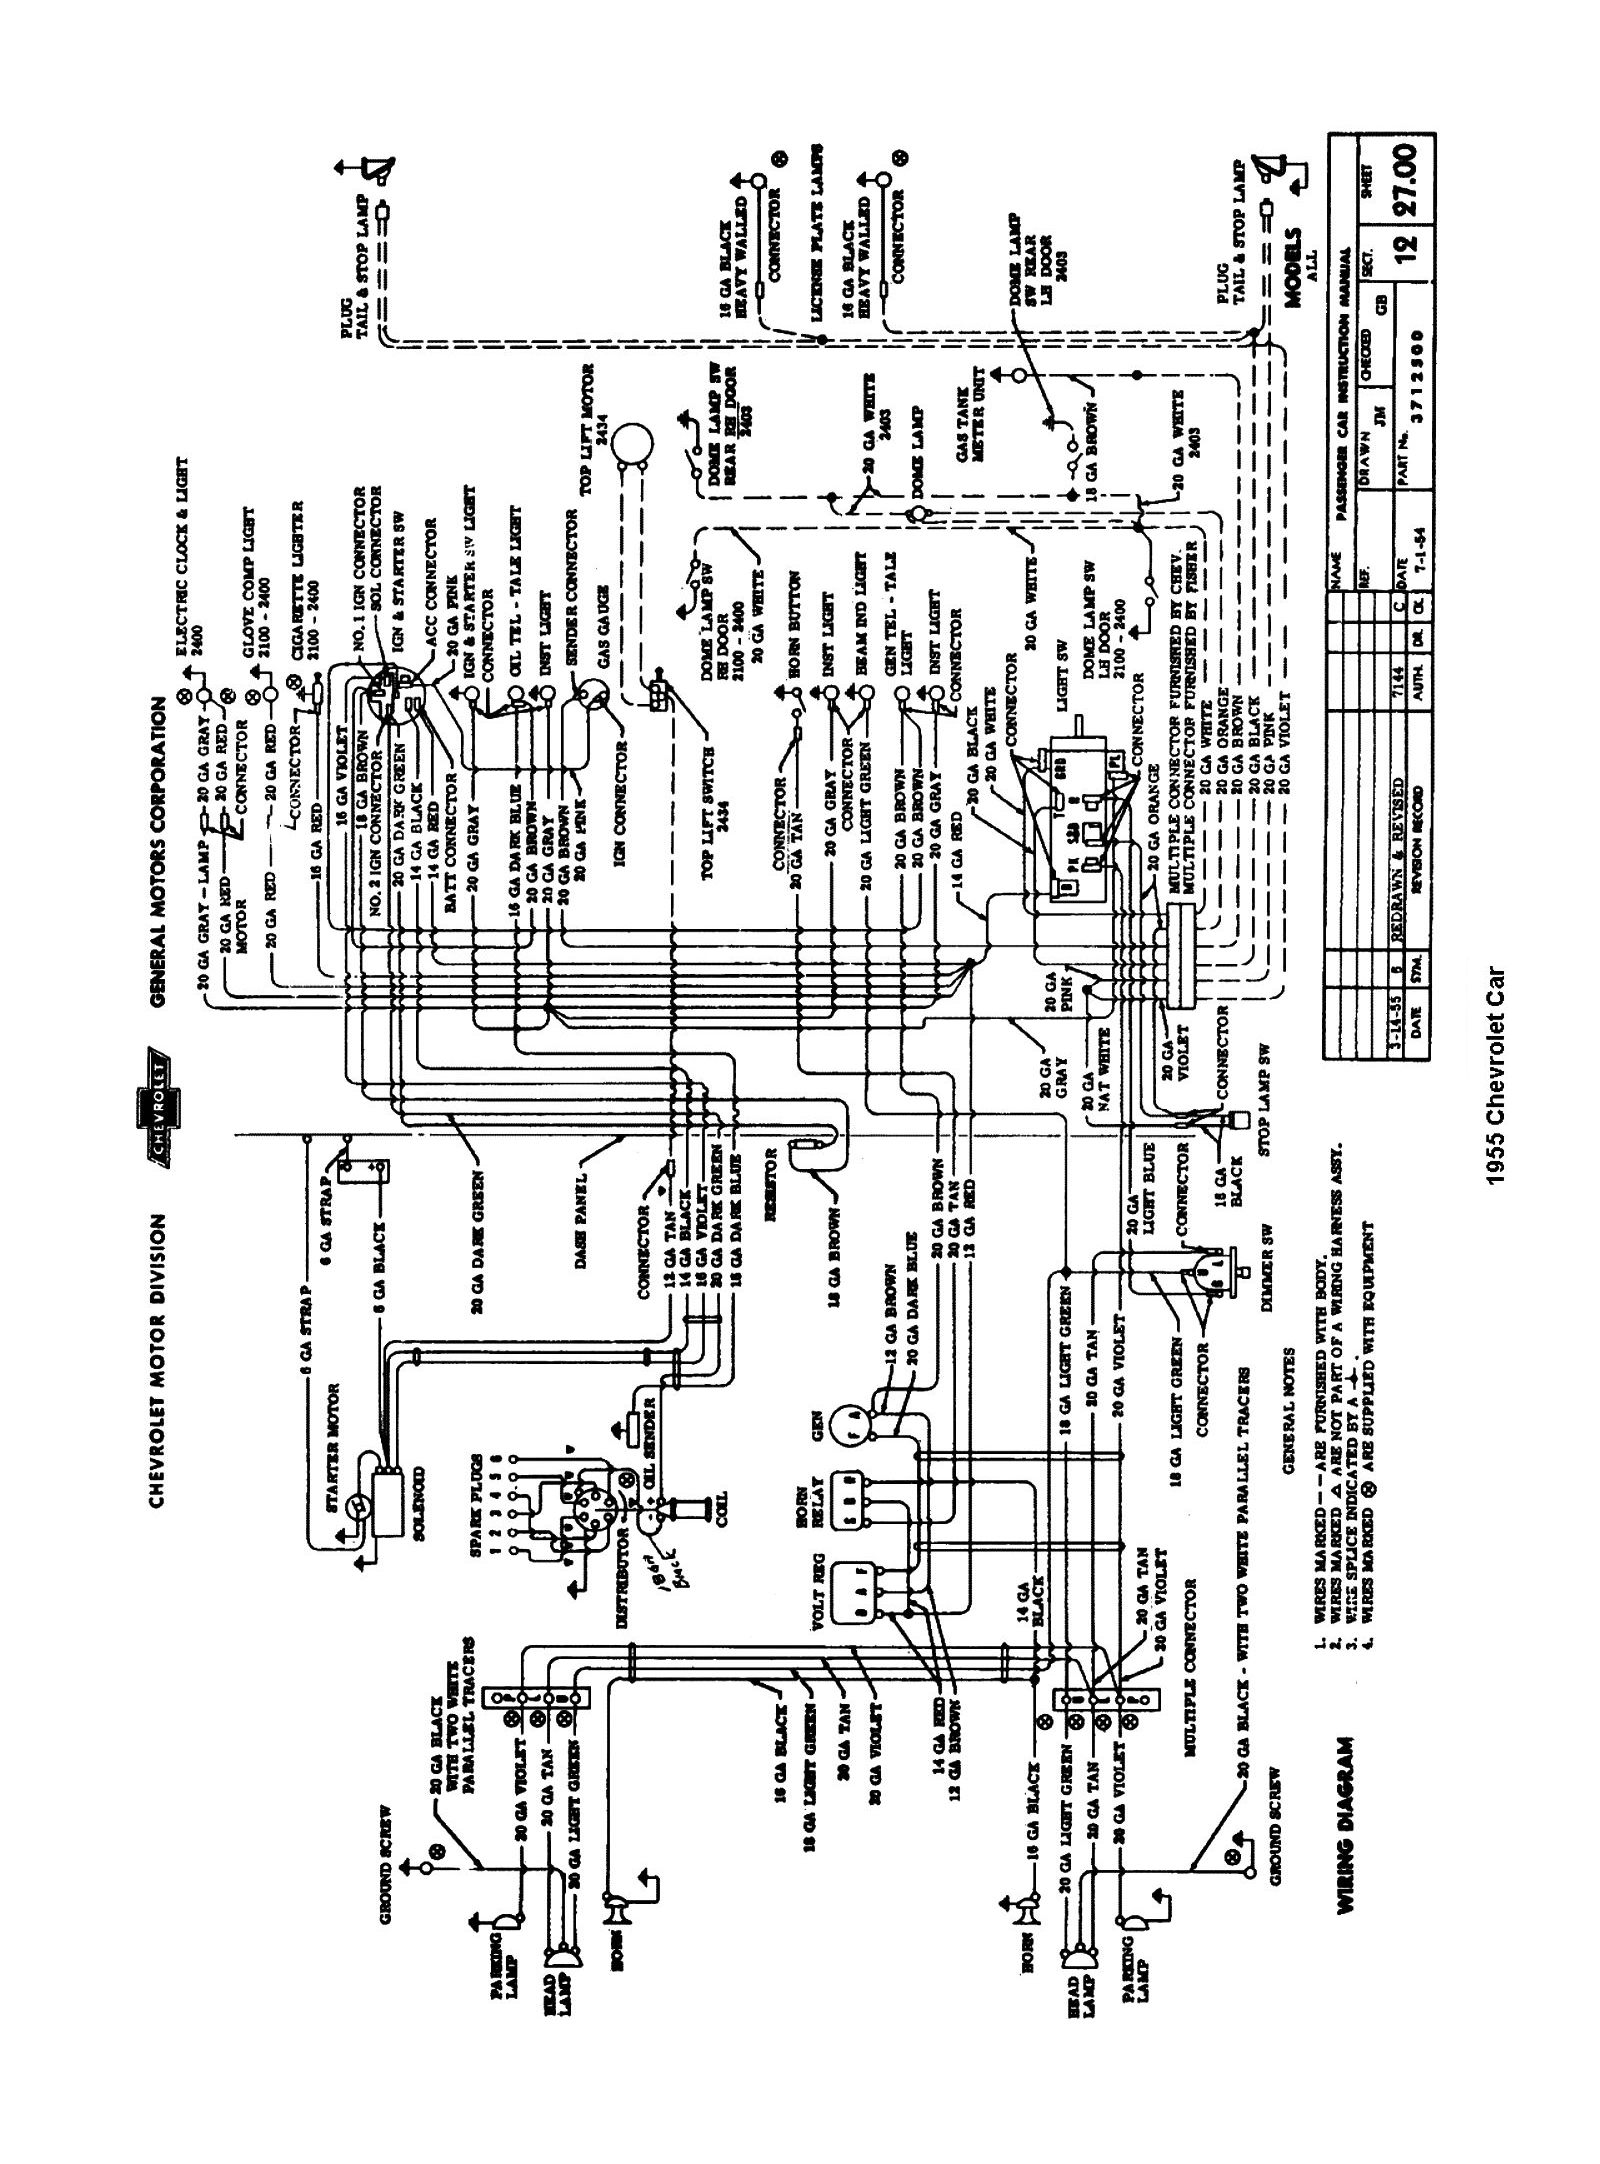 wiring diagram for 1960 oldsmobile all models